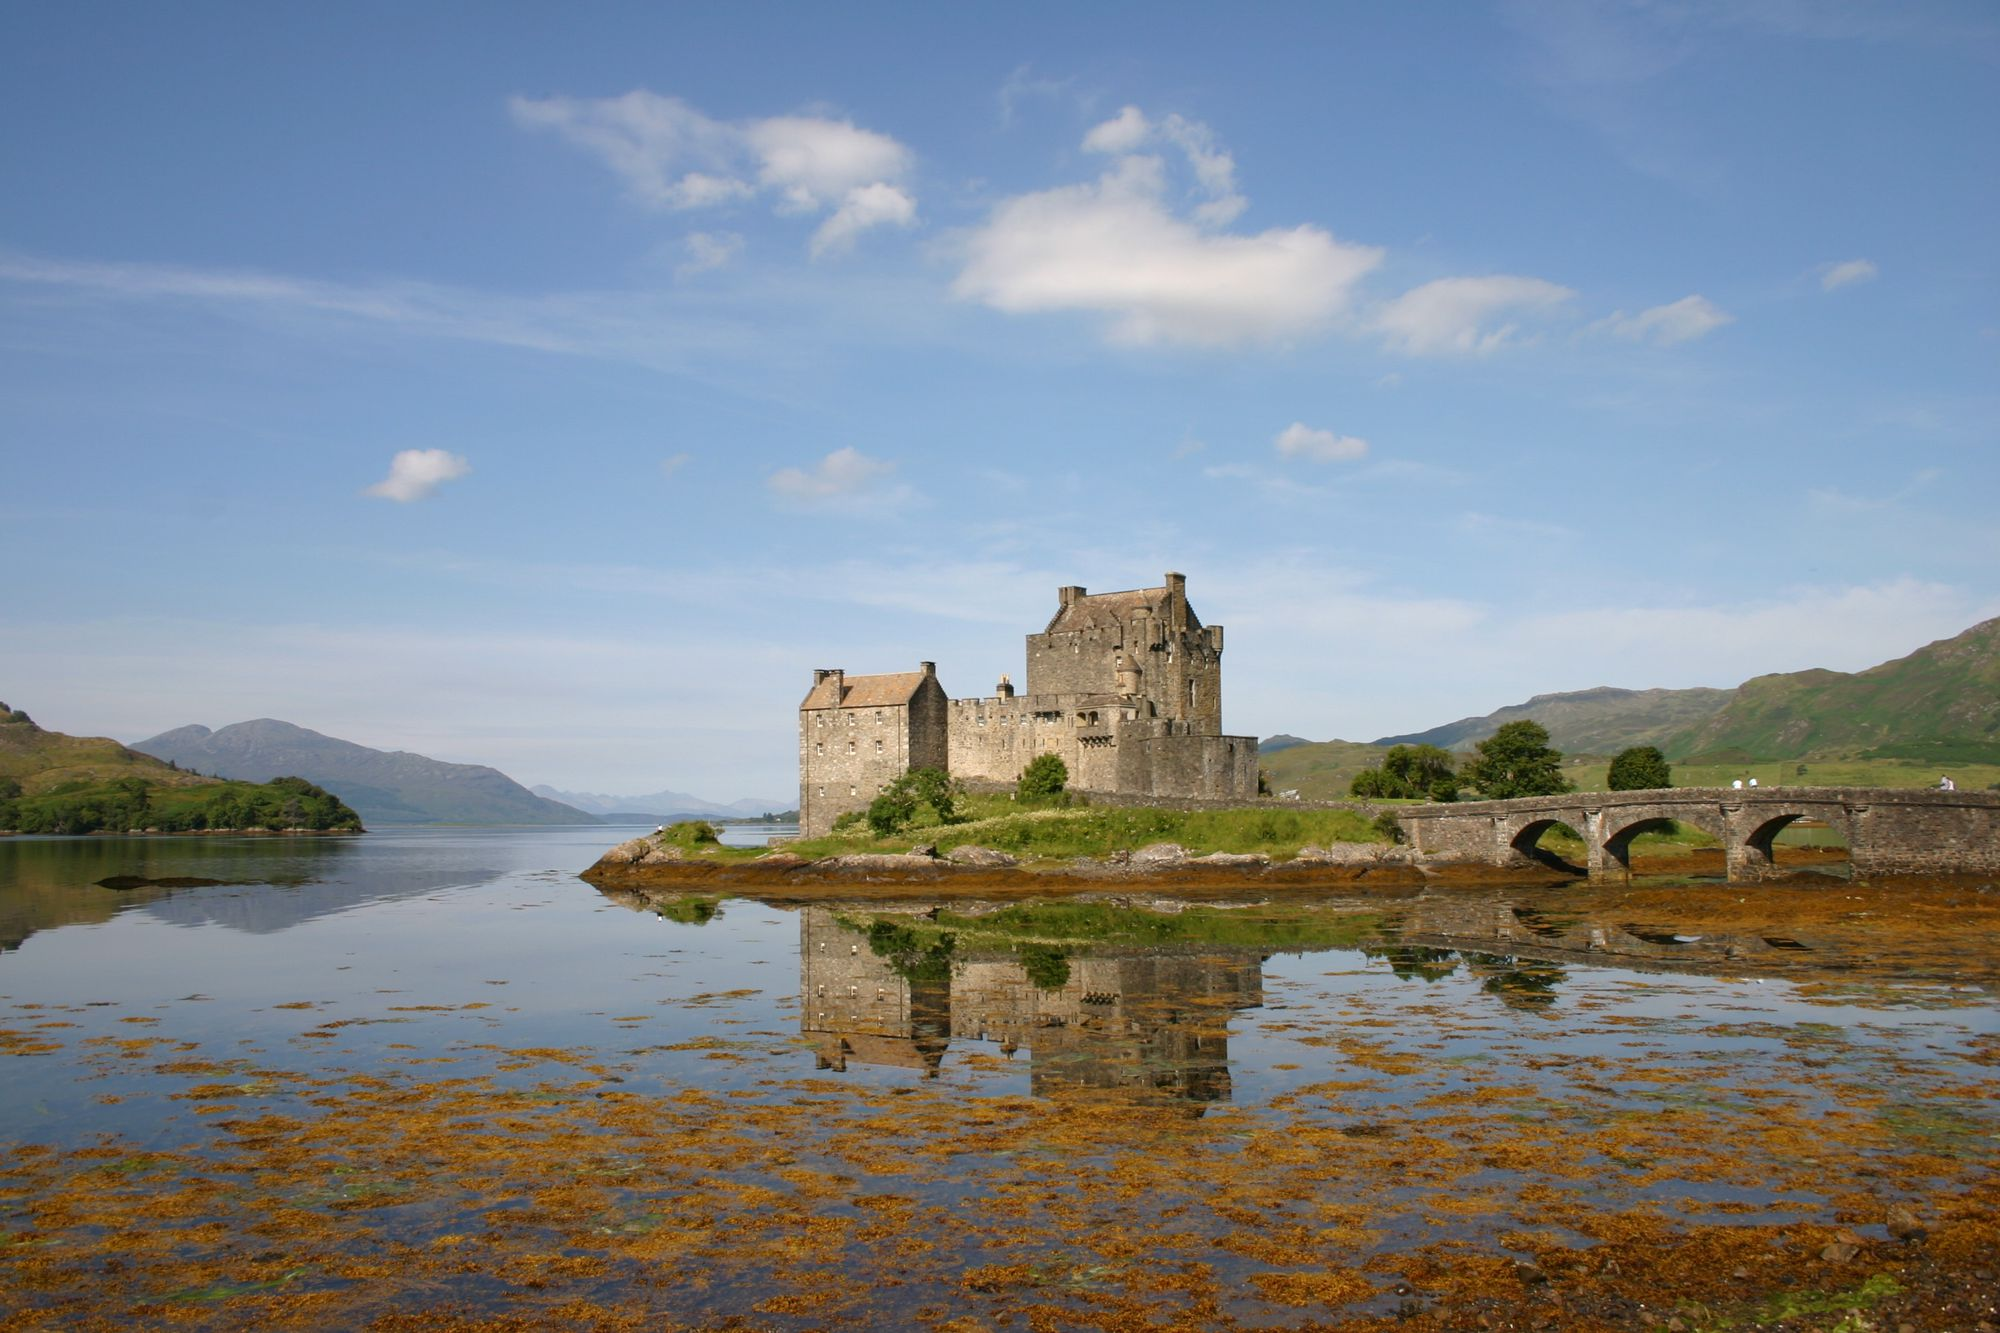 Hotels, Cottages, B&Bs & Glamping in Scotland